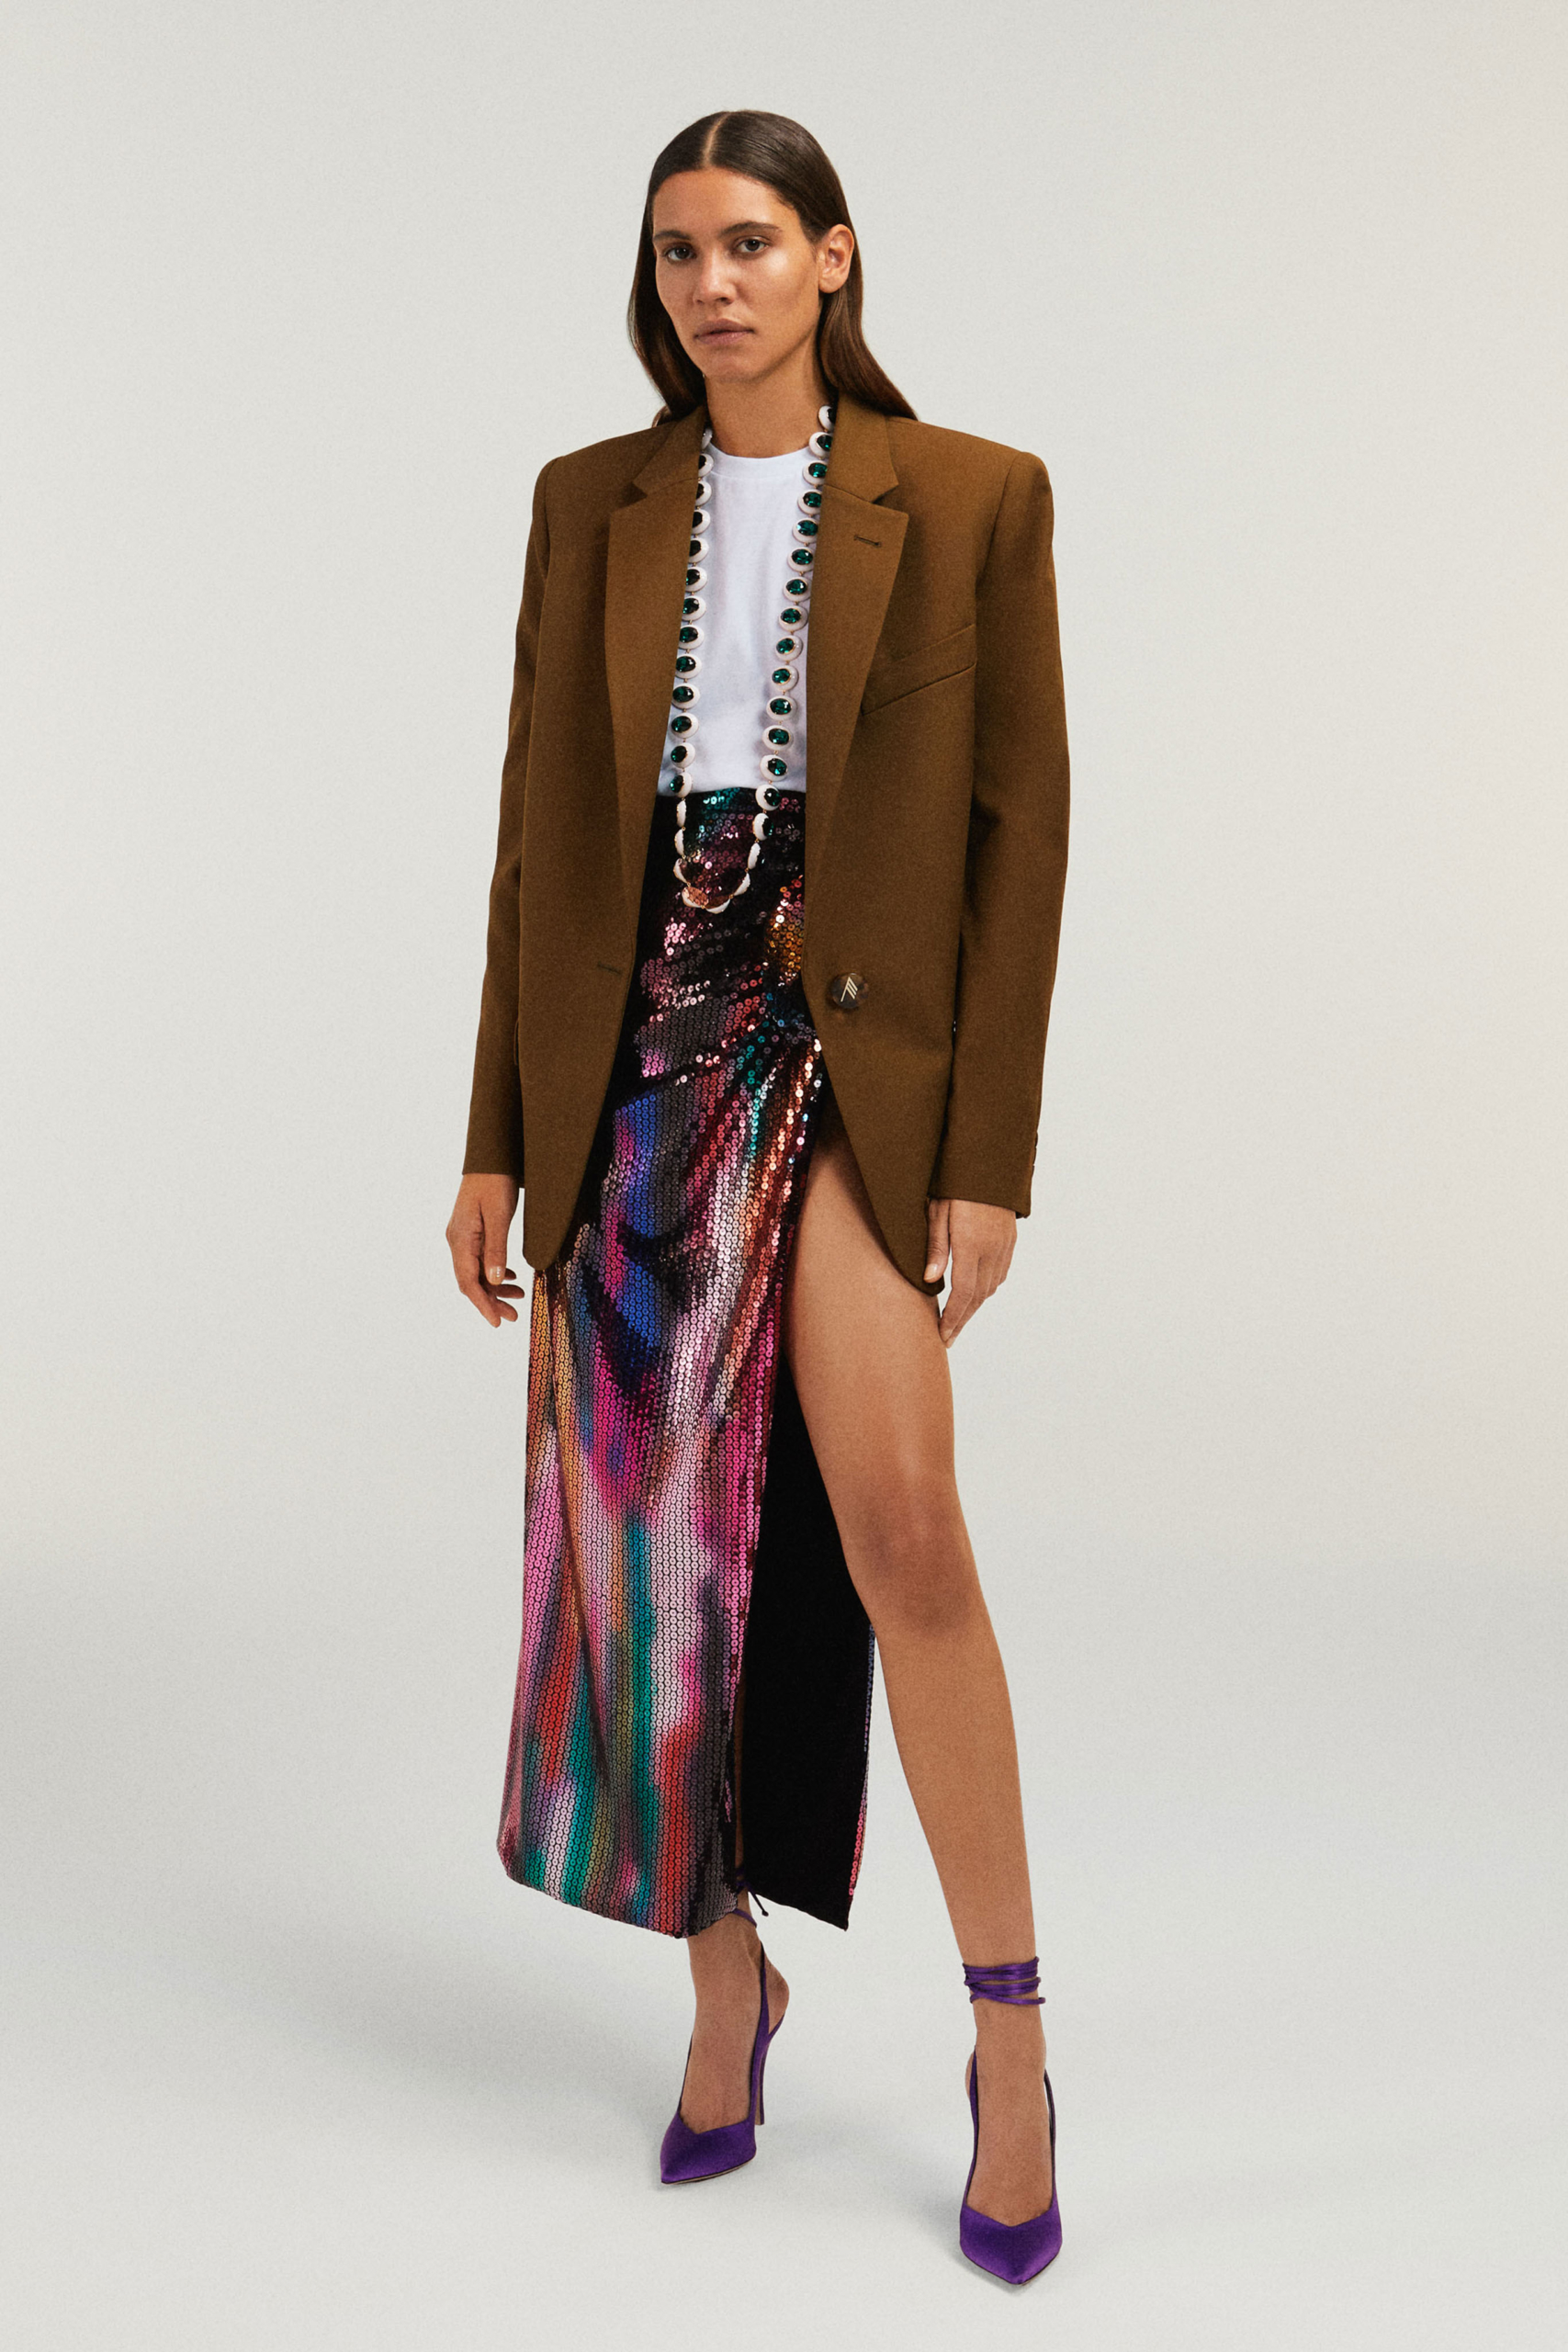 The Attico Pre Fall 2020